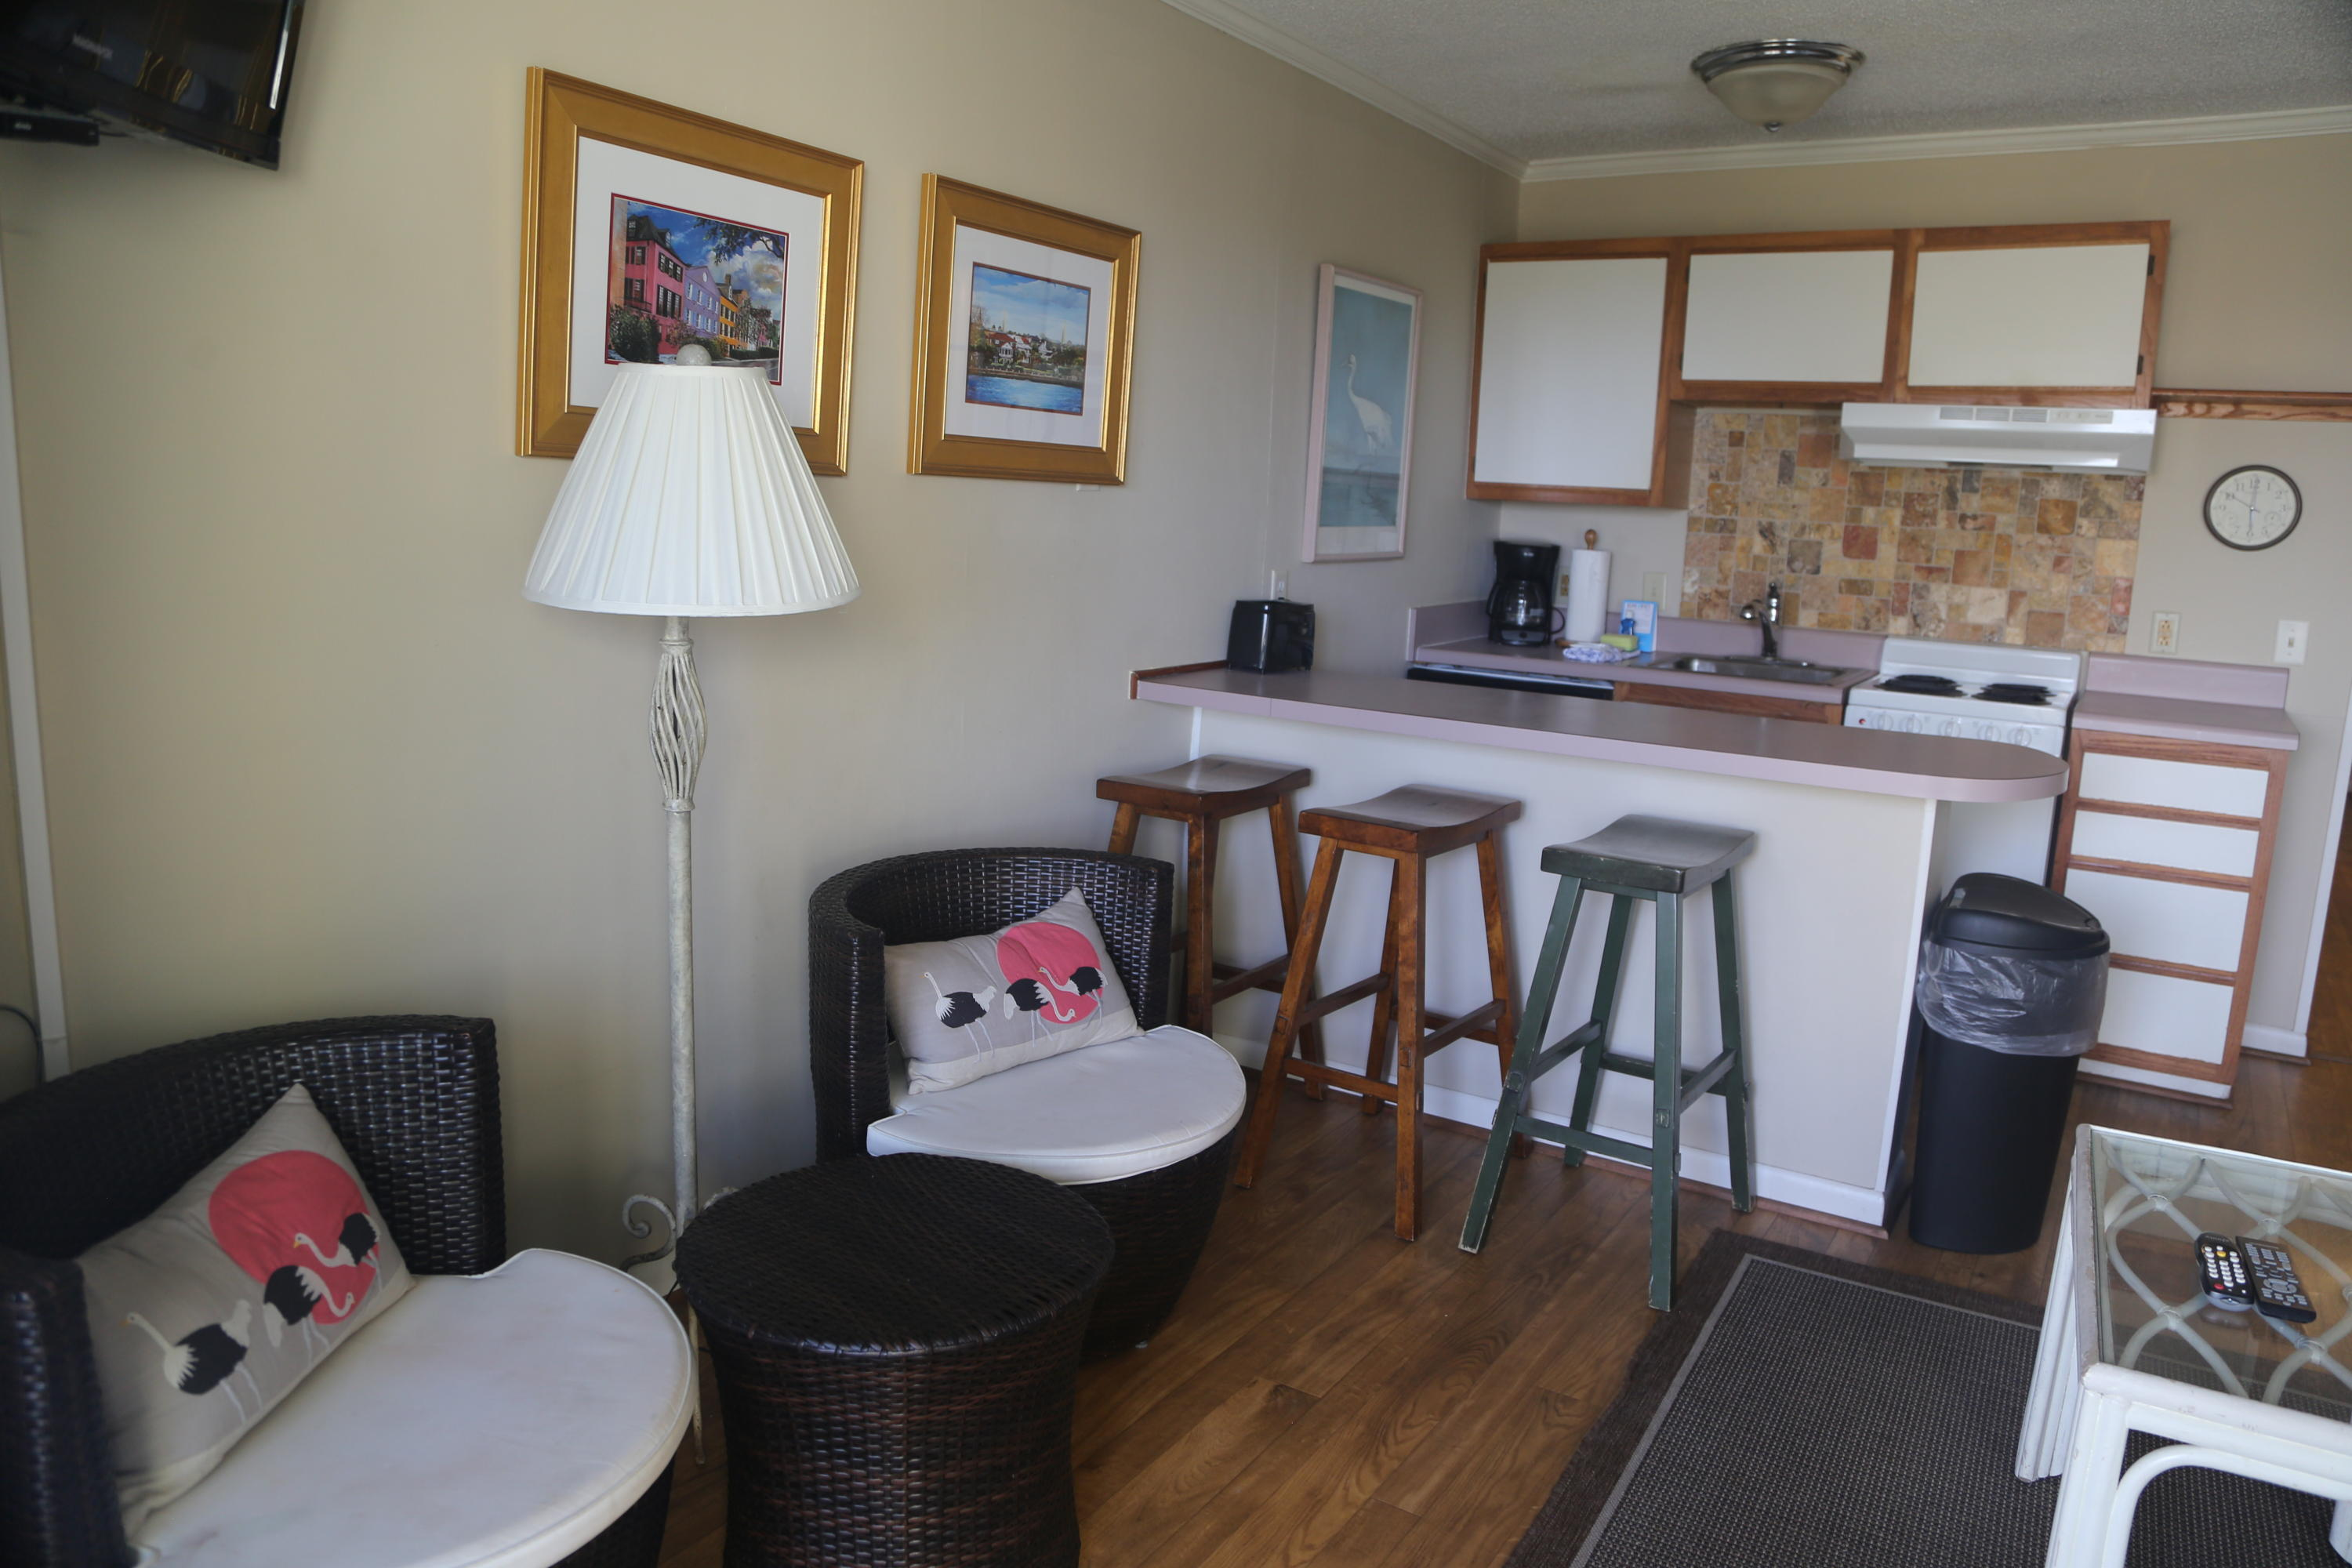 Sea Cabin On The Ocean Homes For Sale - 1300 Ocean, Isle of Palms, SC - 55